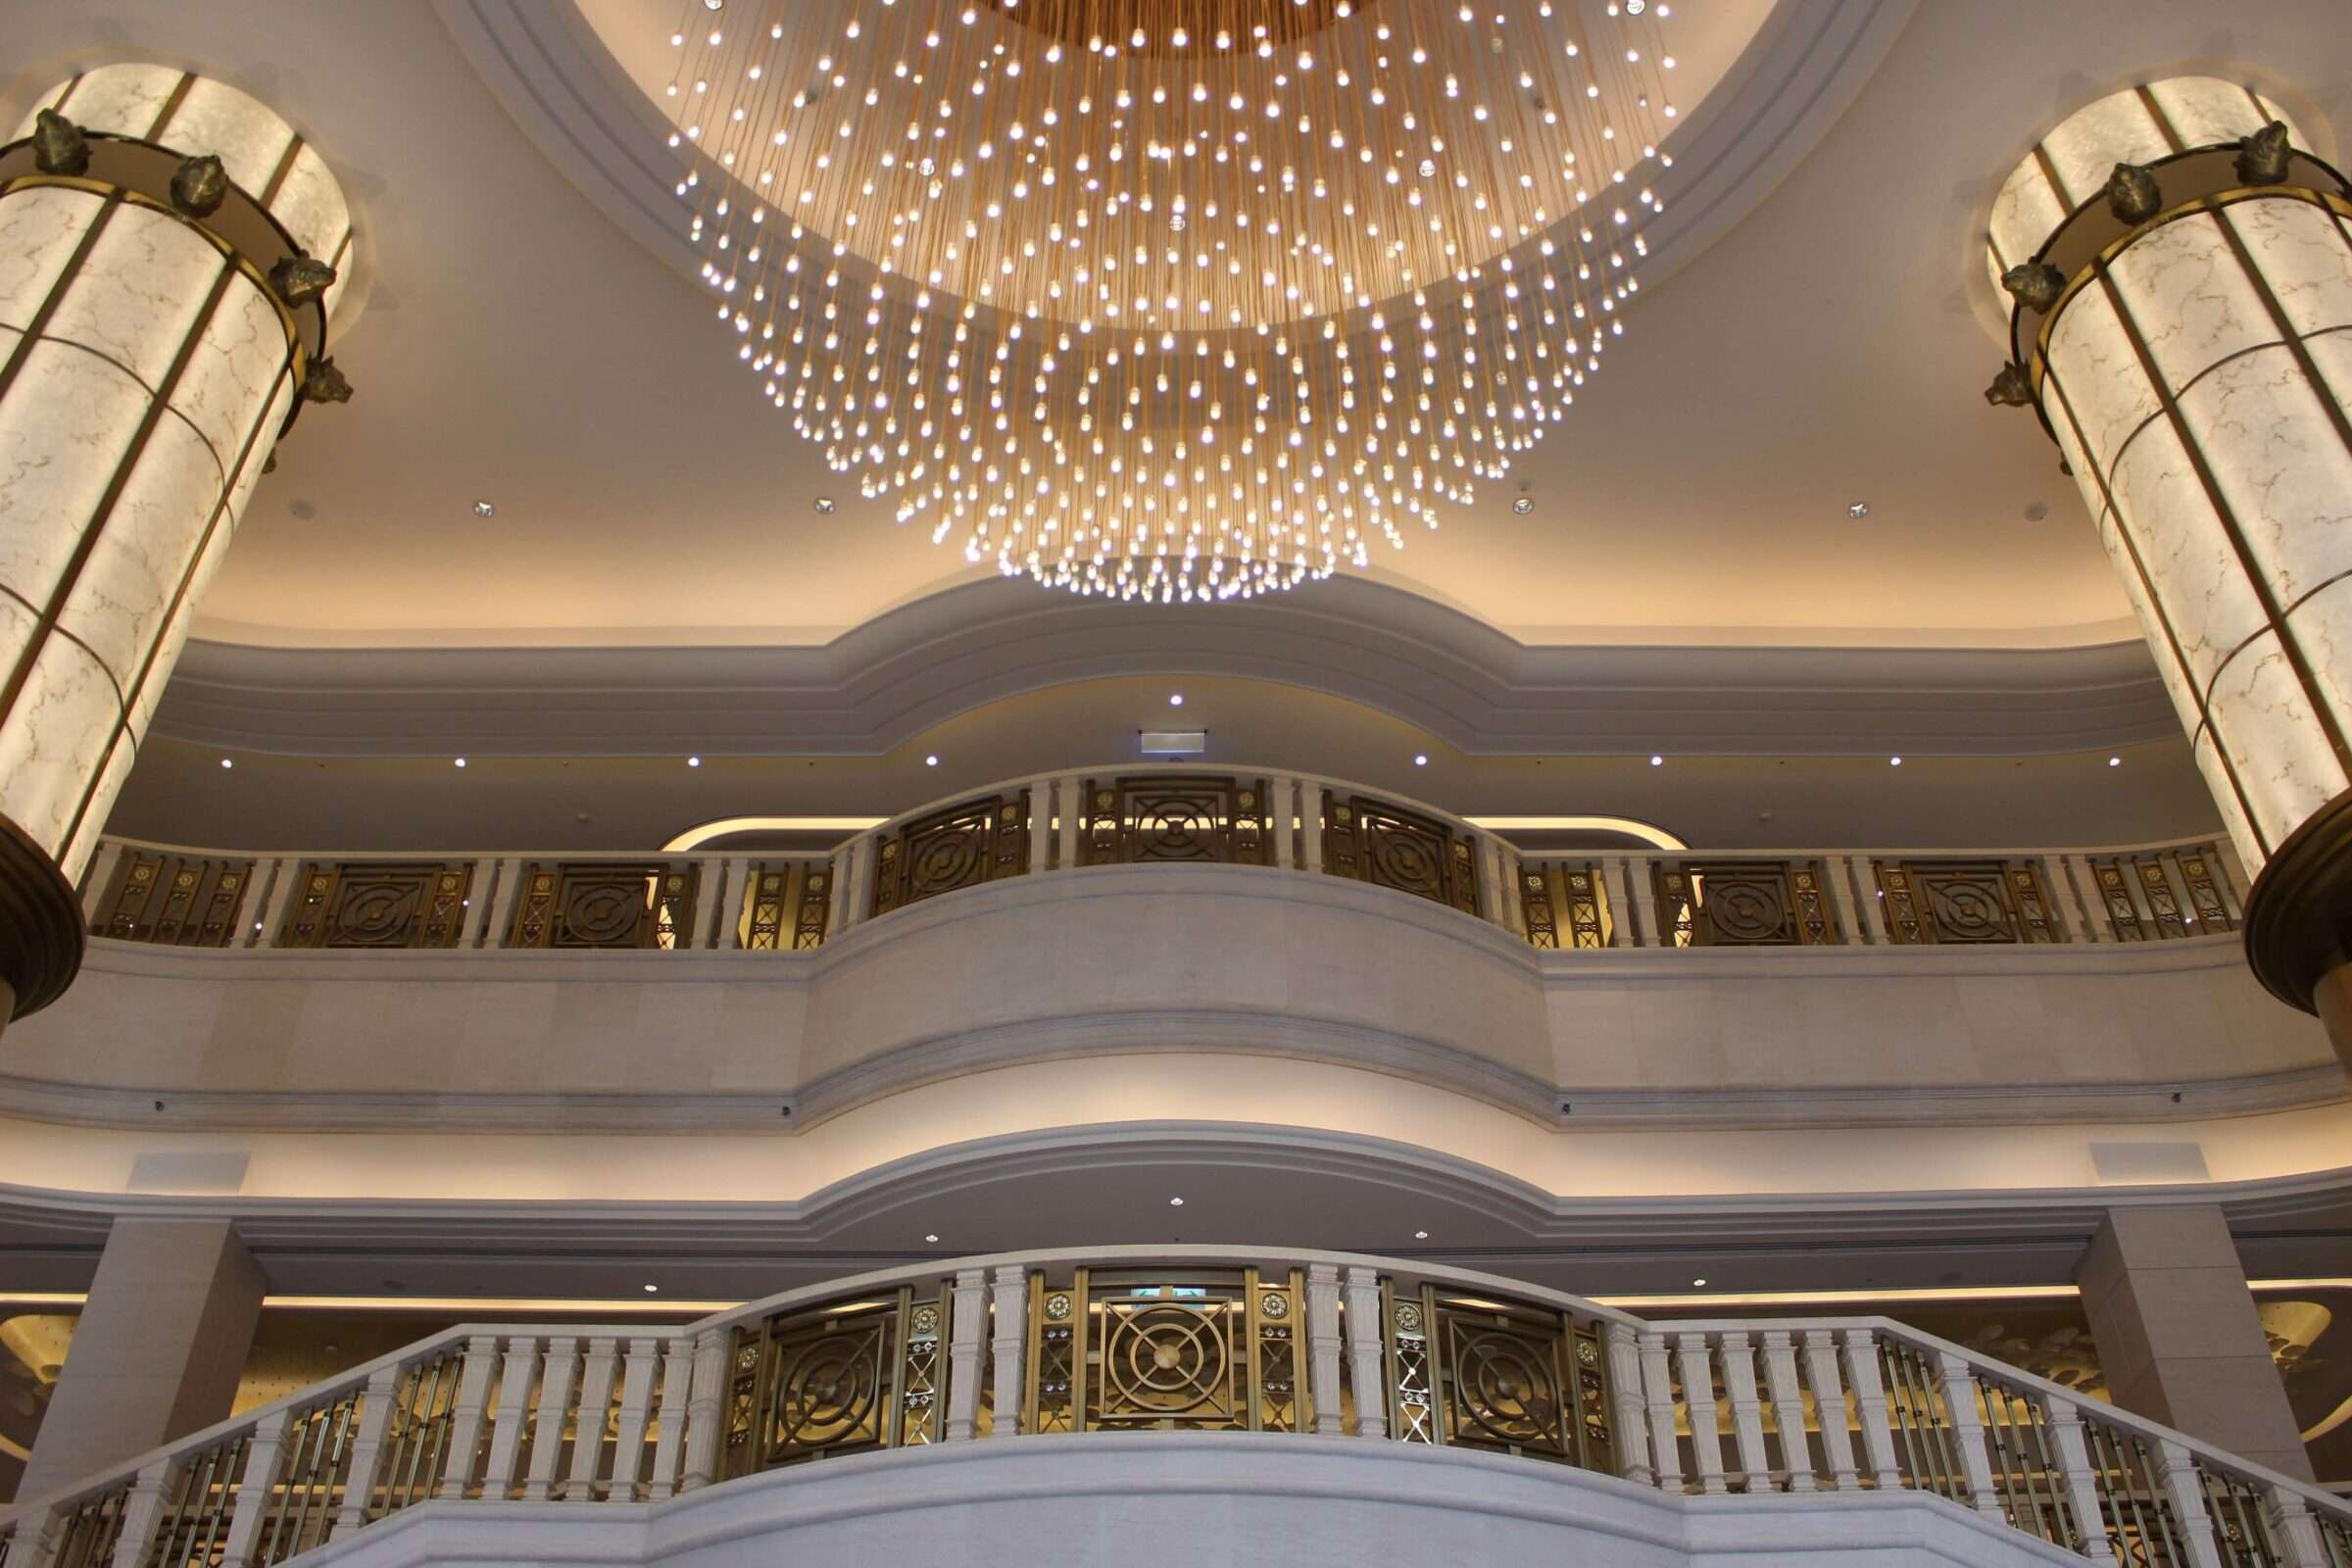 large chandelier hangs in the foyer of Grand Mayfull Hotel in Taipei